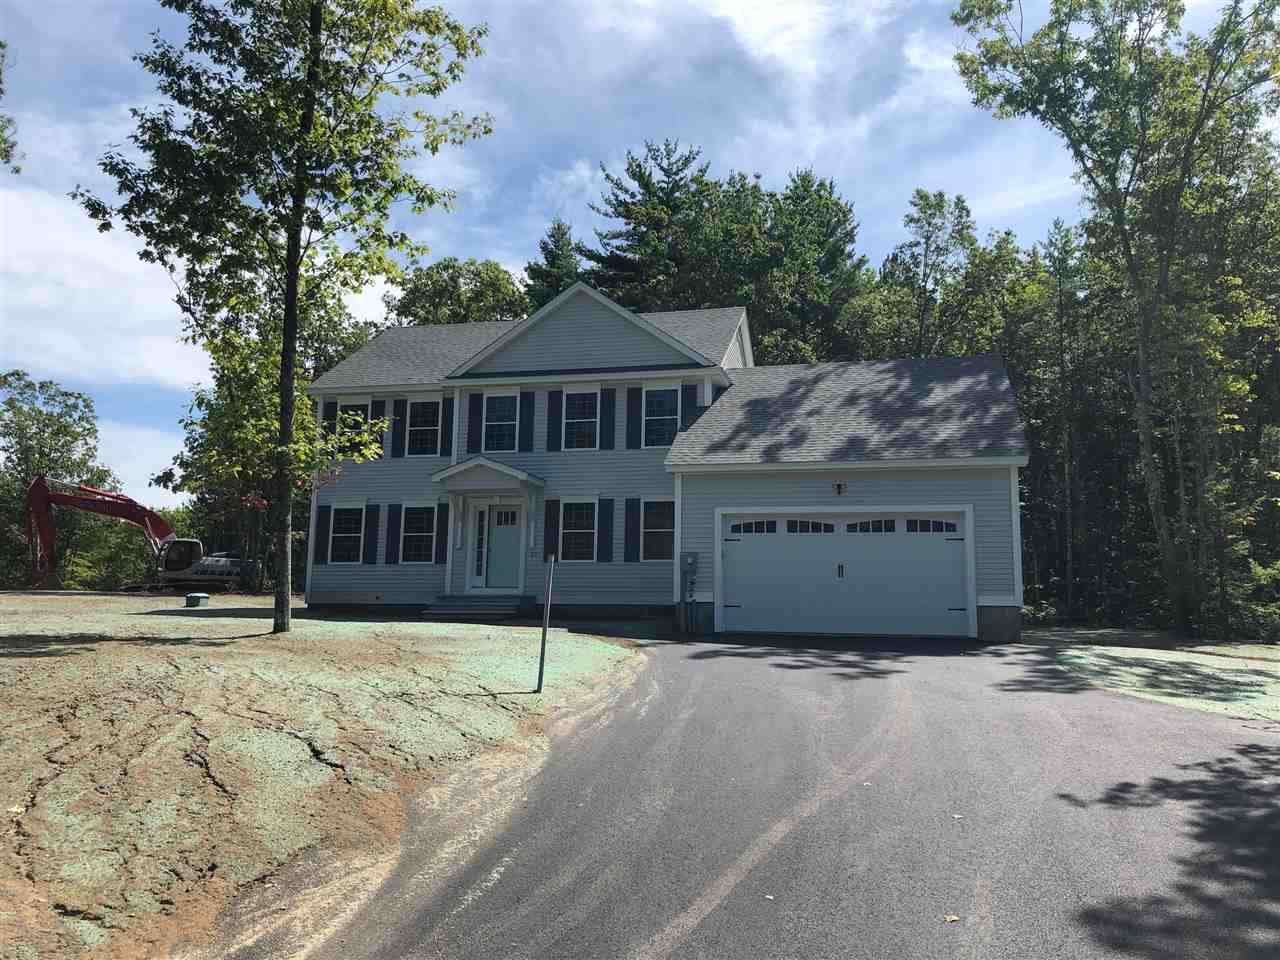 Photo of 37 Sandybrook Drive Raymond NH 03077